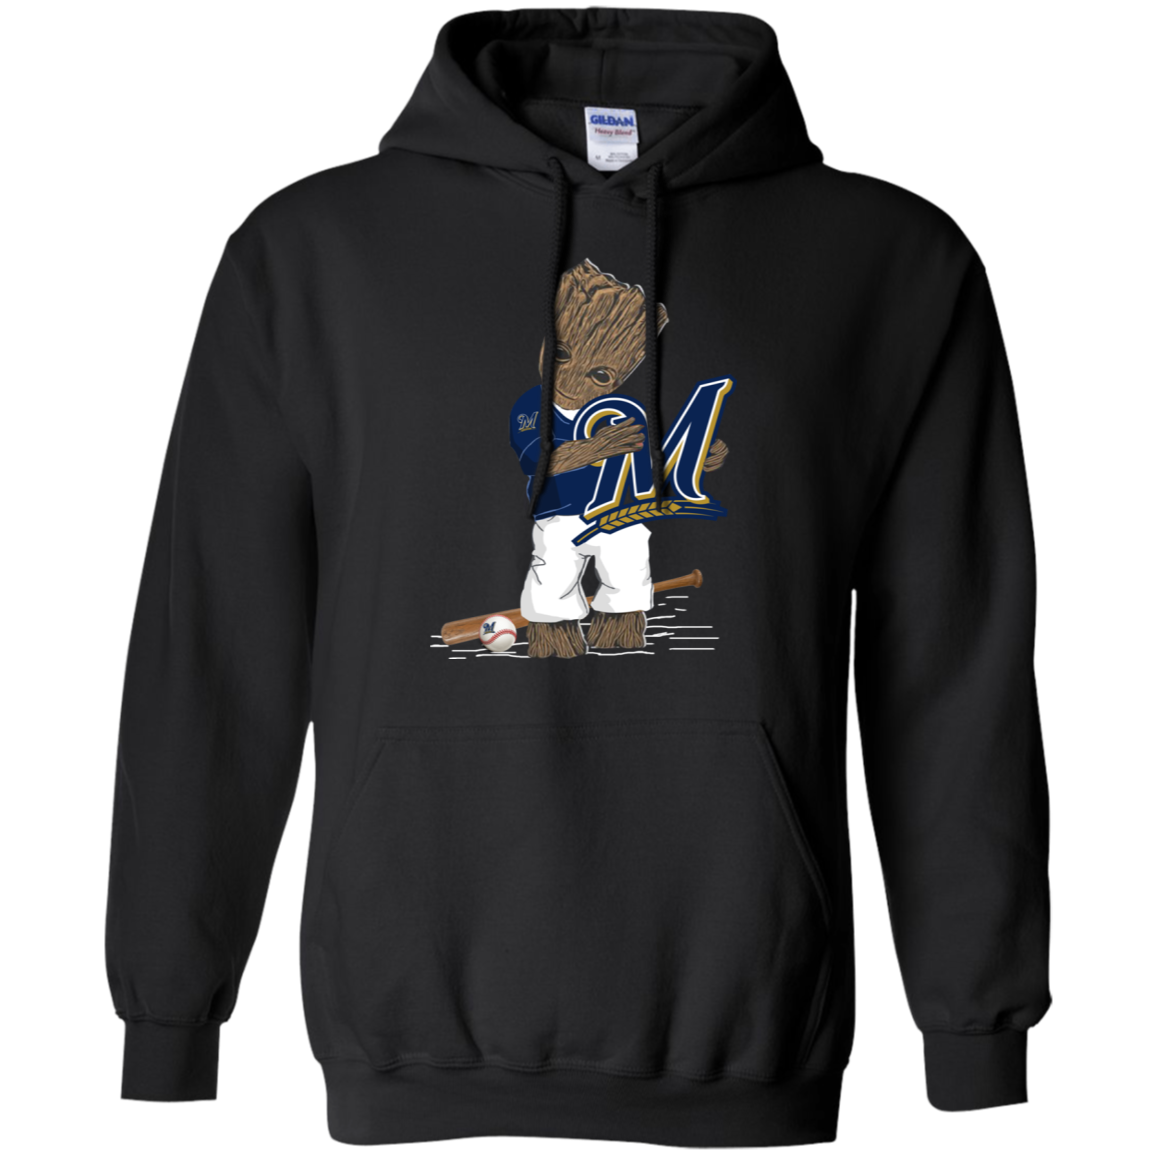 Baby Groot hugs Milwaukee Brewers shirt Hoodie